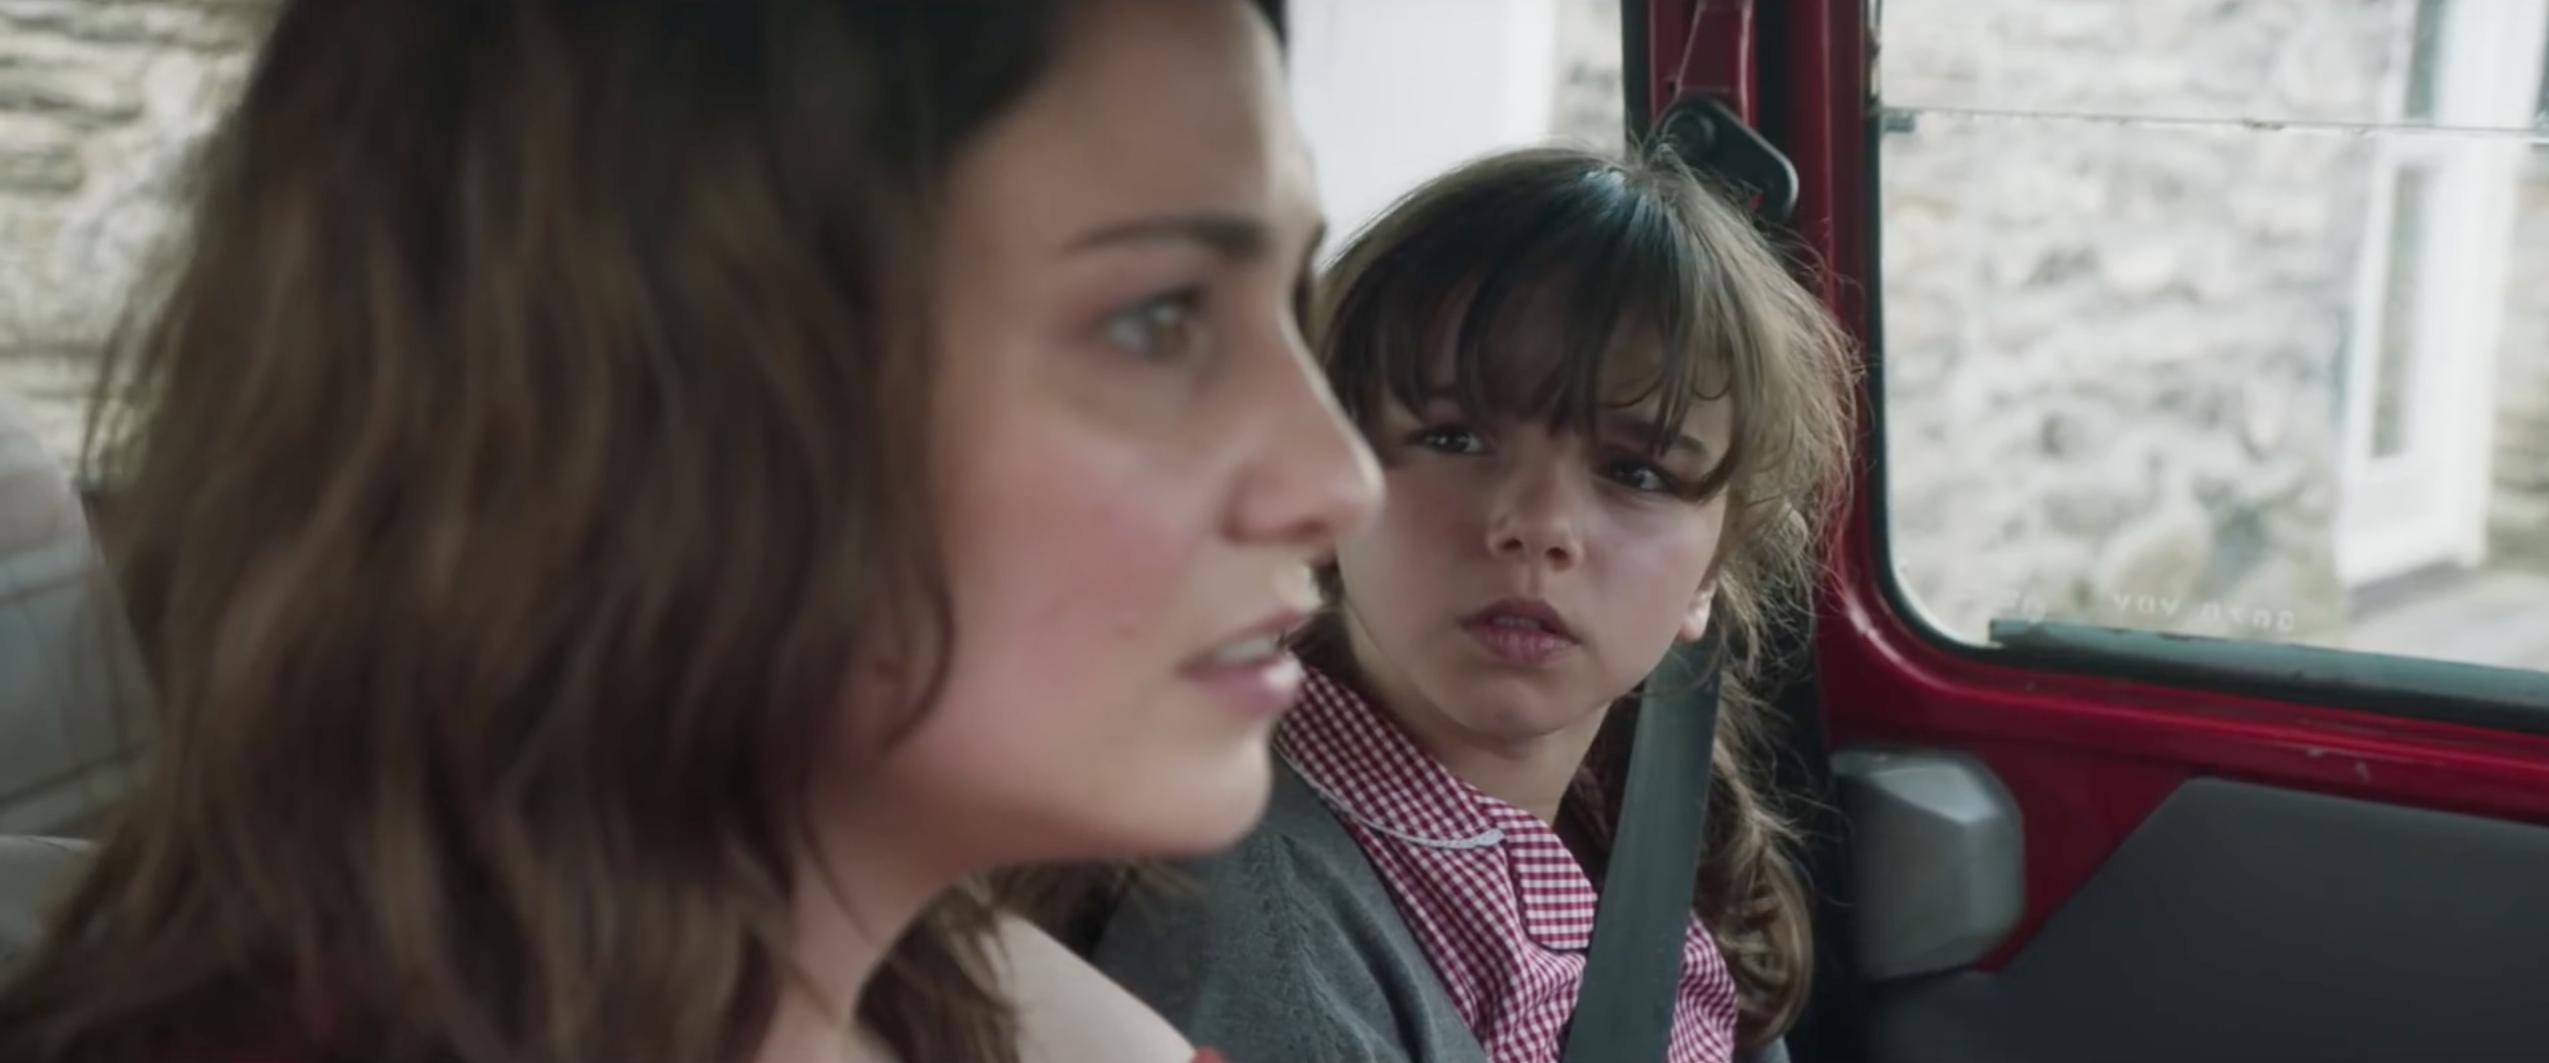 Tuppence Middleton and Meadow Nobrega in Fisherman's Friends (2019)